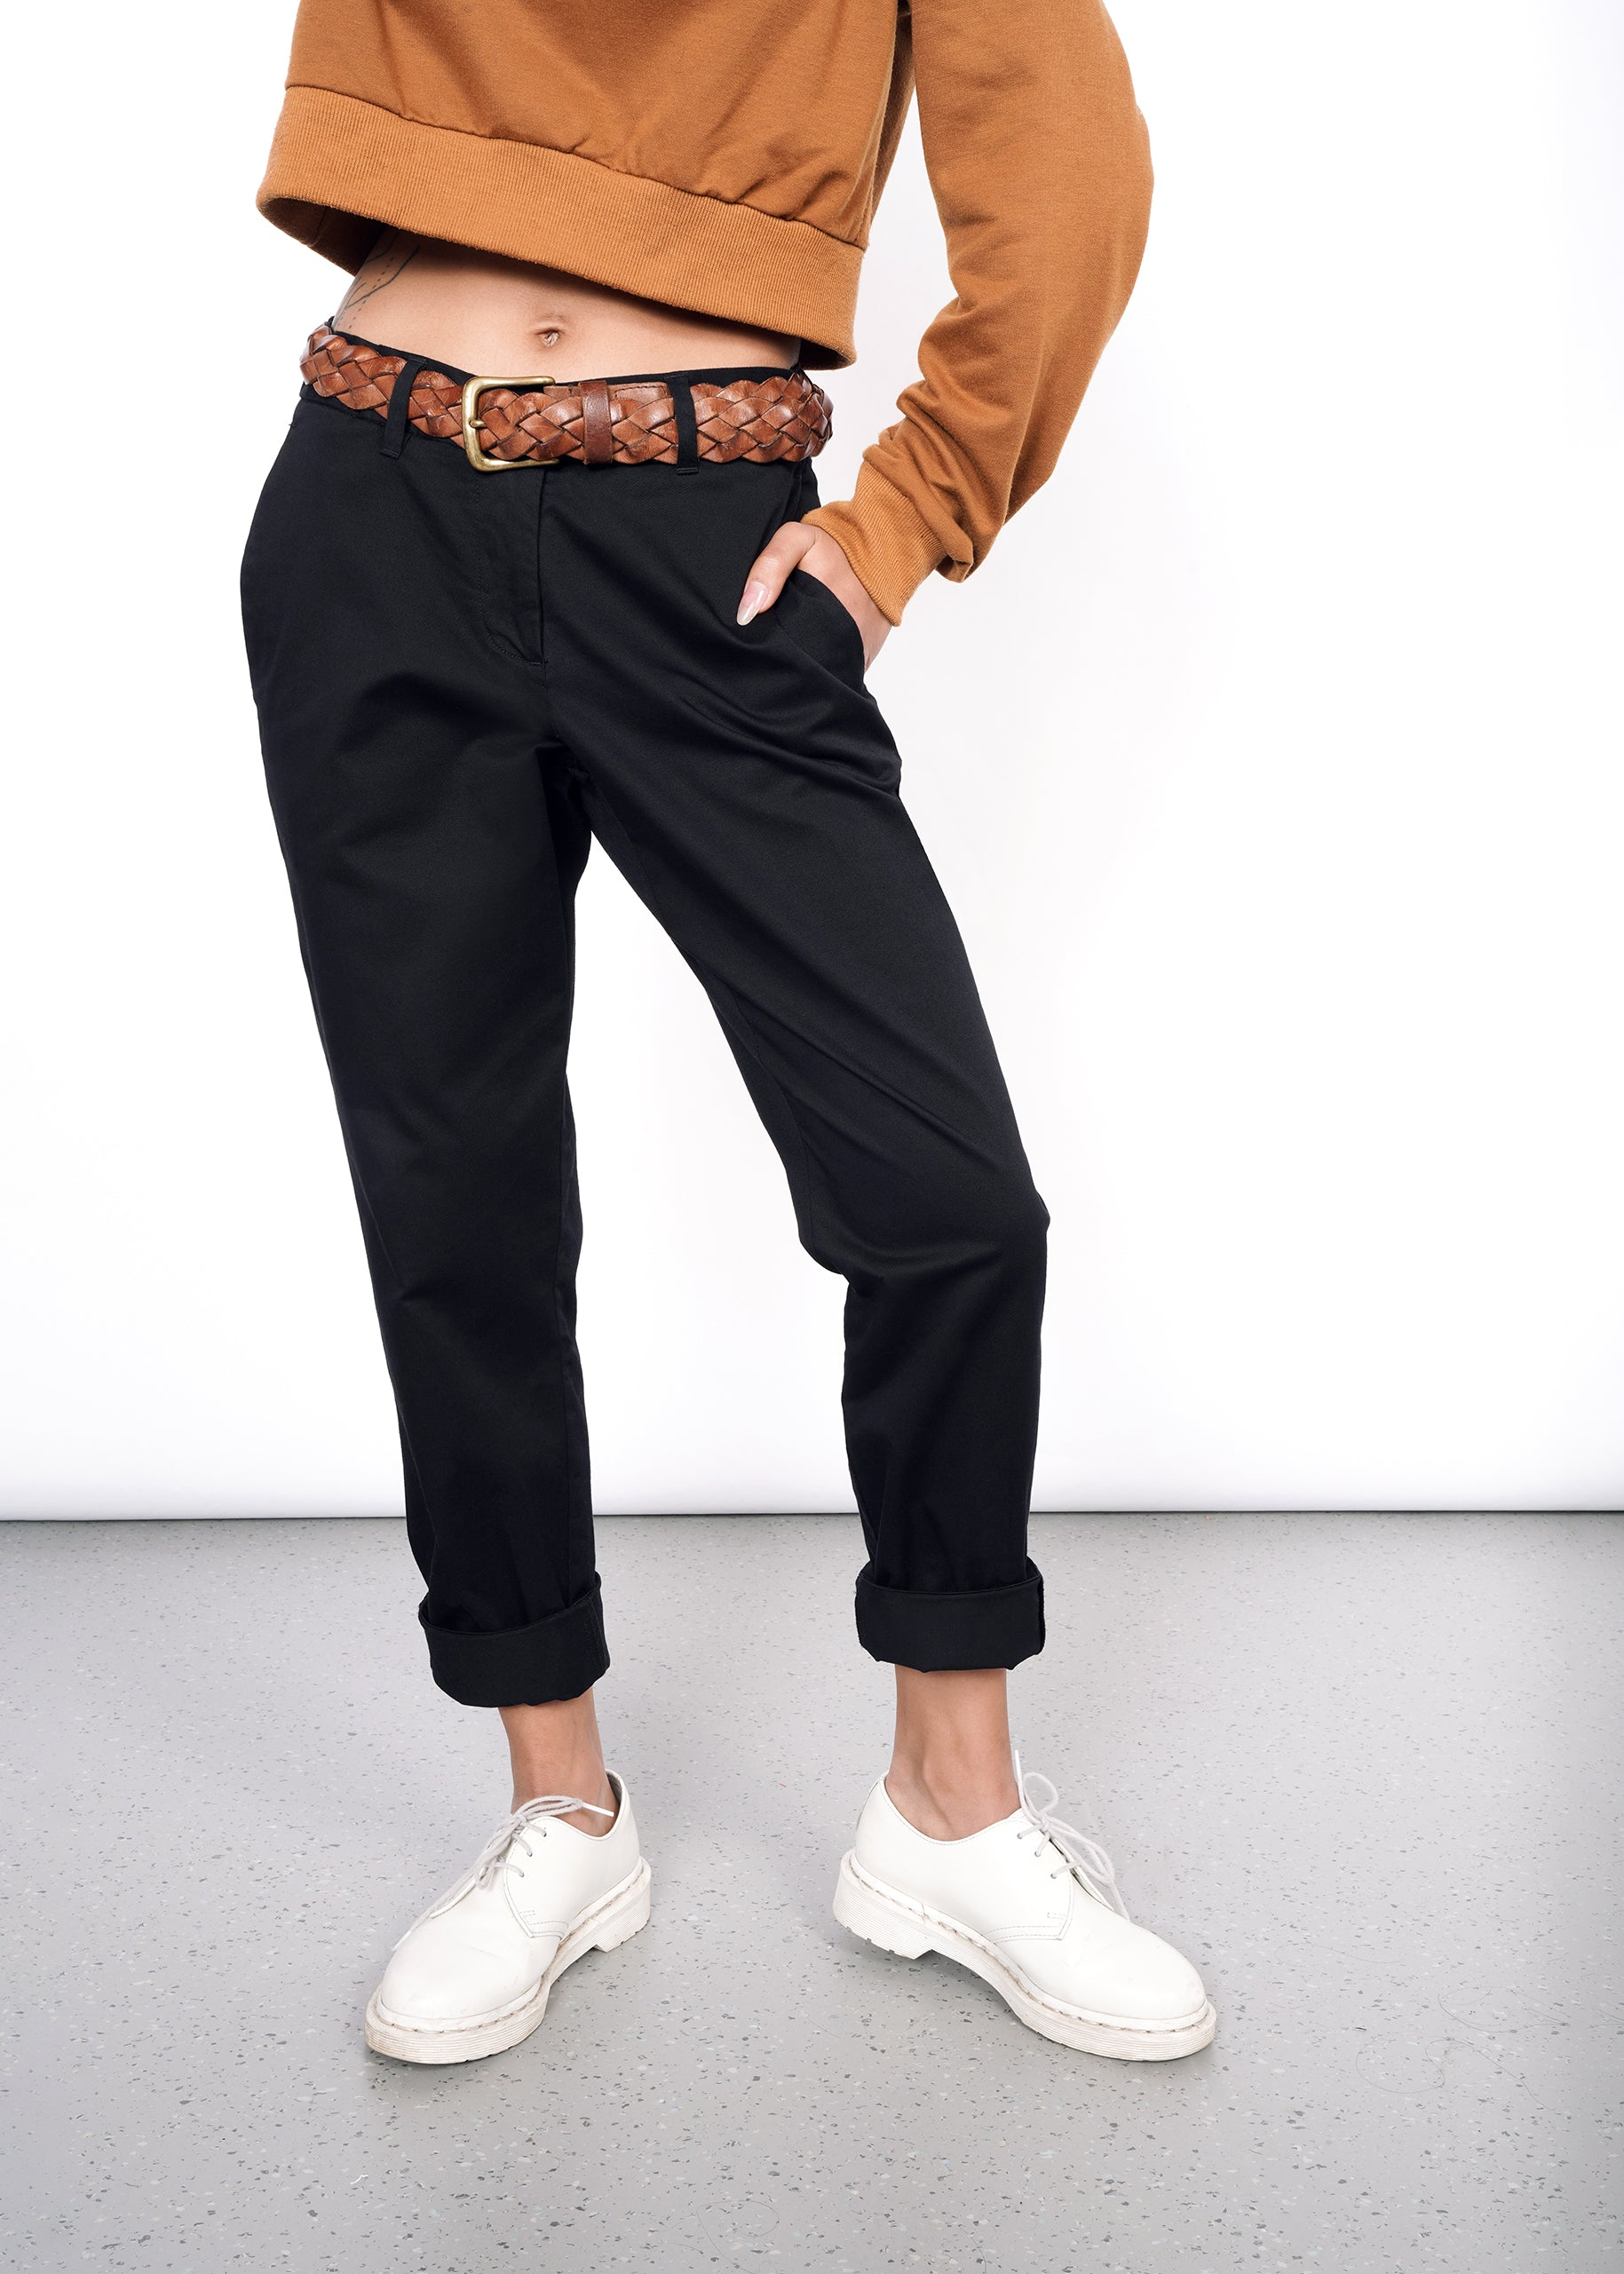 Model wearing black essential trouser pant in size 2, with hand in pocket and pant legs cuffed up